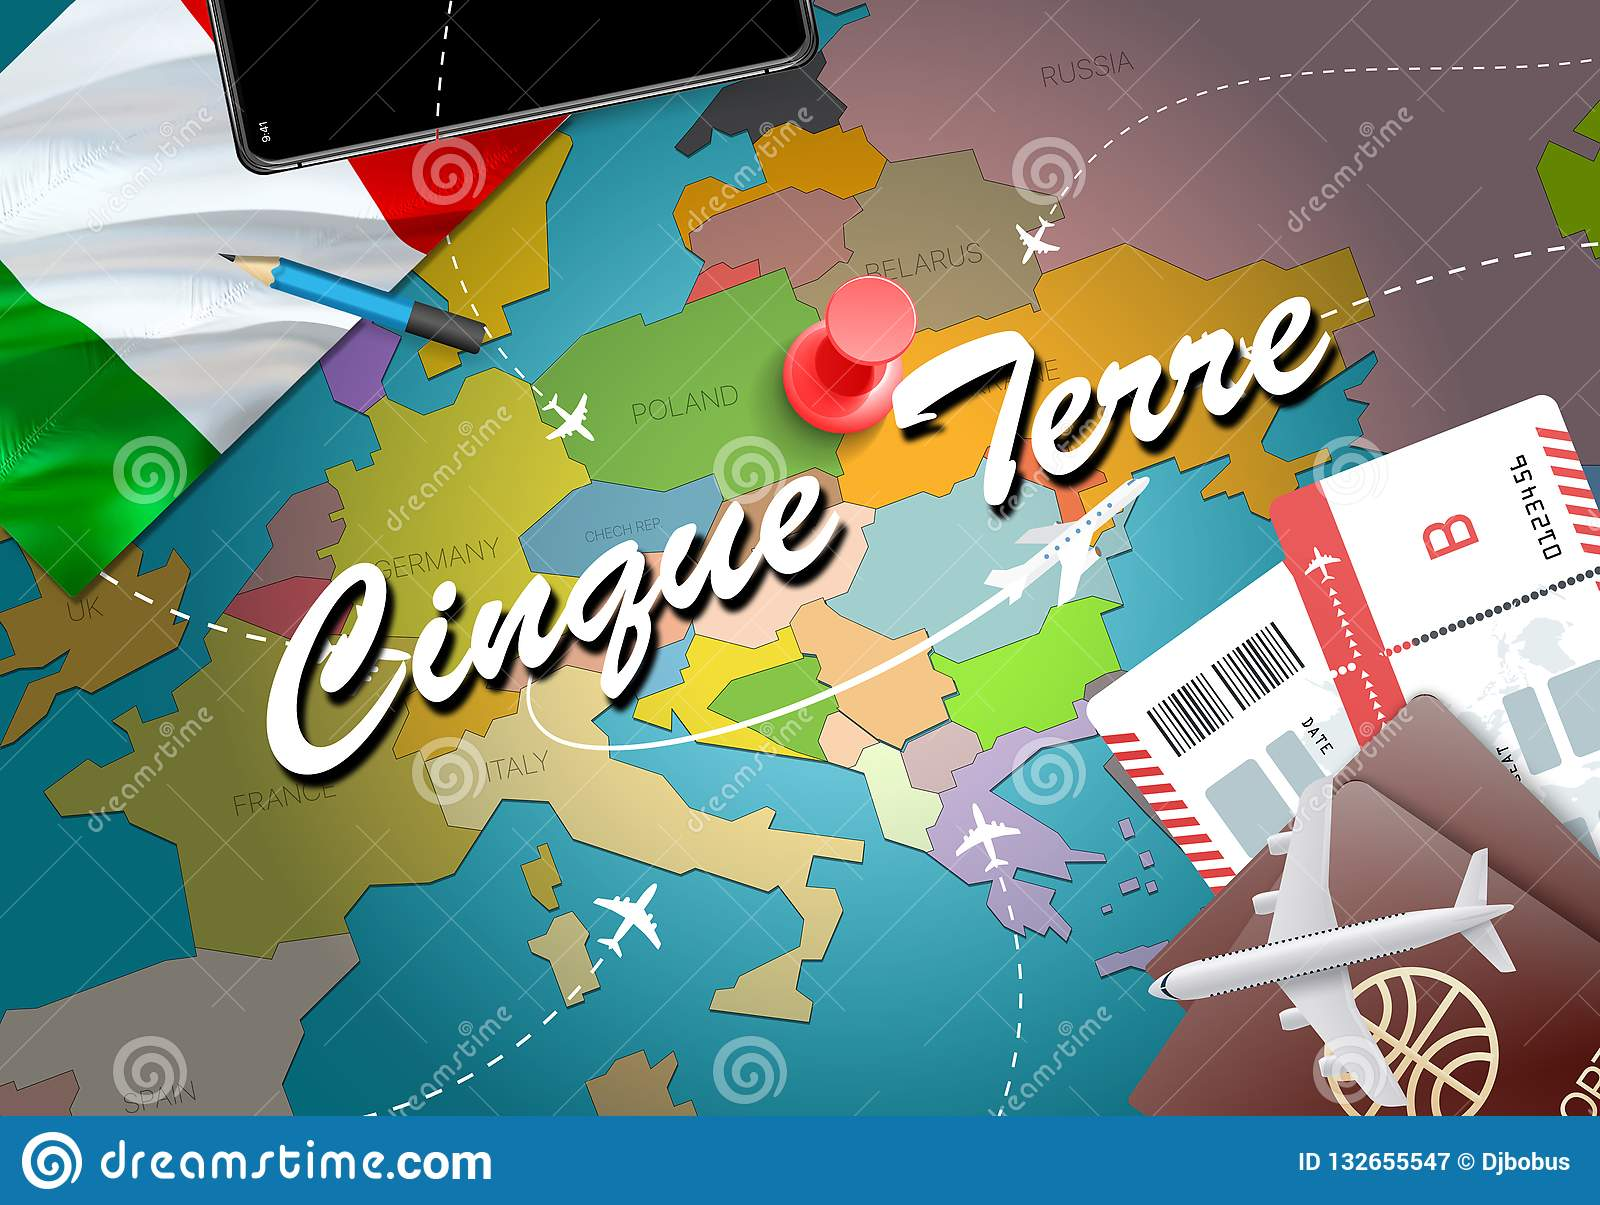 Italy Map Cinque Terre.Cinque Terre City Travel And Tourism Destination Concept Italy